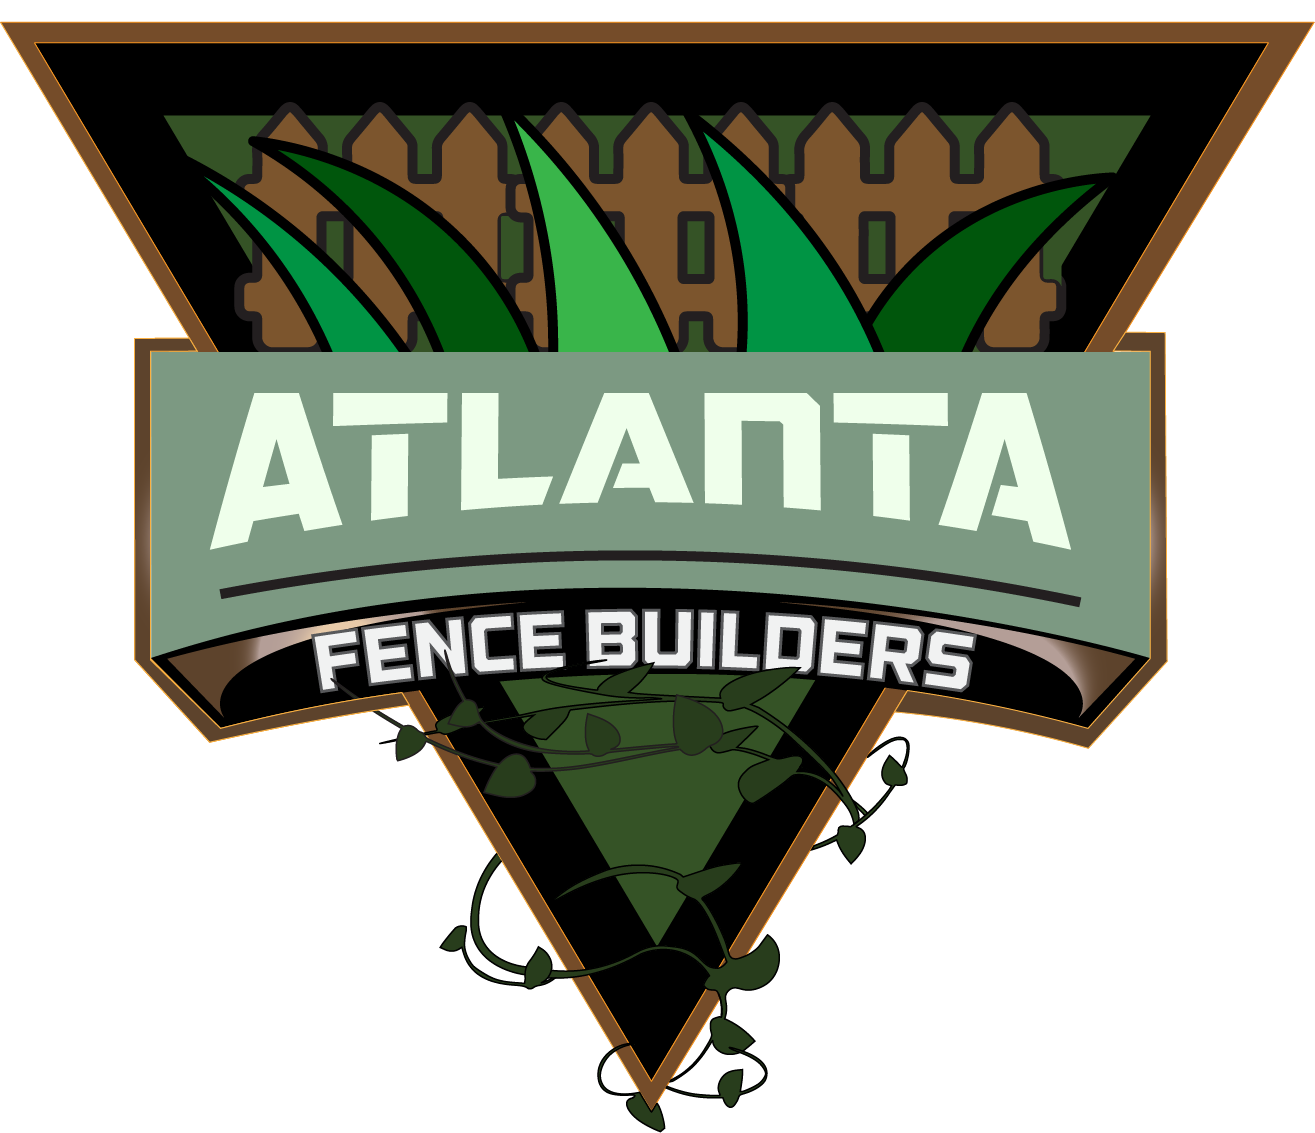 Atlanta Fence Builders Handles All Types of Fence Installation Needs